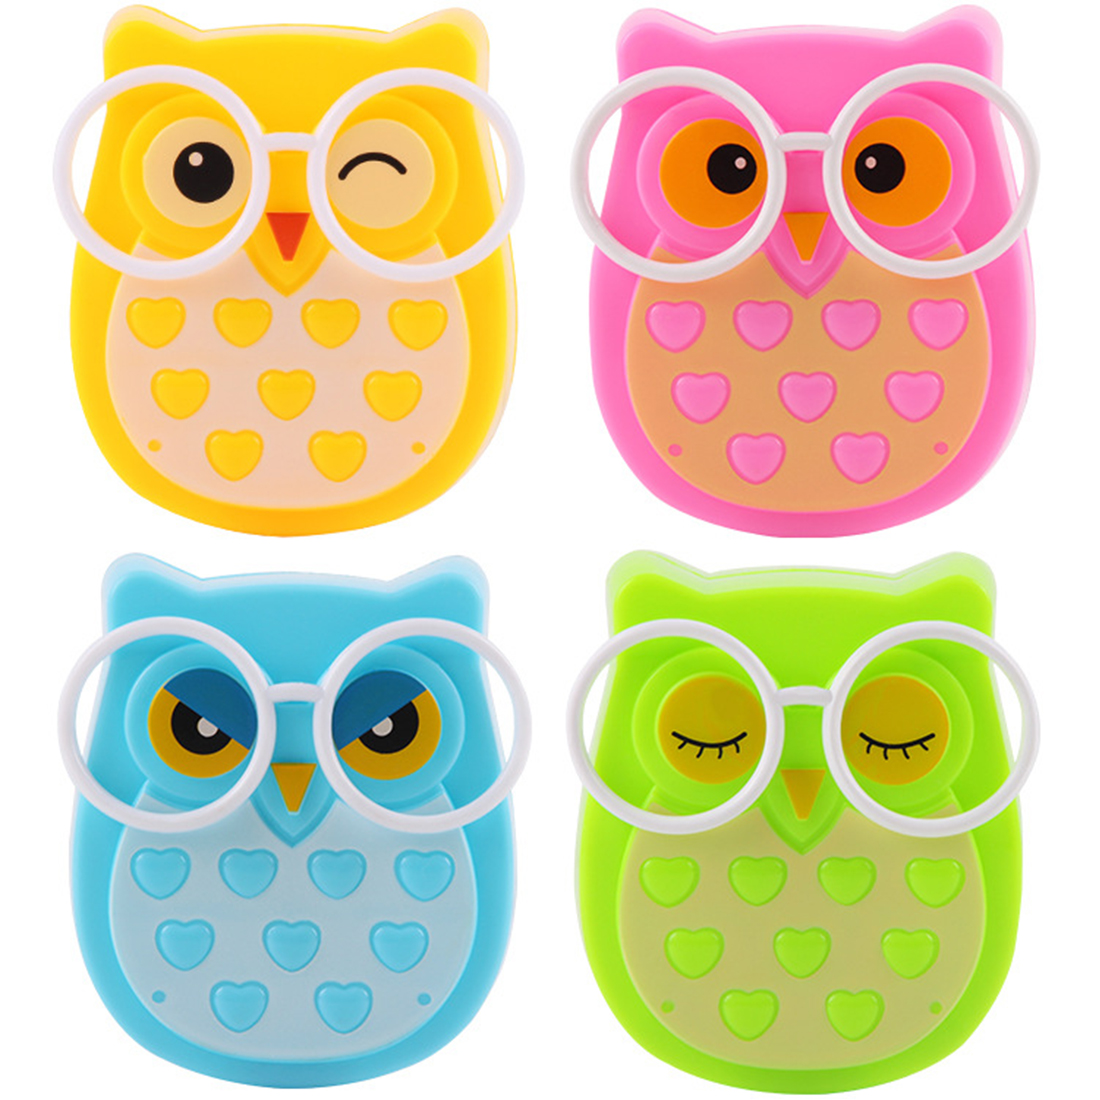 Mini Owl Led Night light Auto Sensor Light Control Lamp US Plug Child Kids Baby Lighting Room Lamp Animal Socket Mini Owl Led Night light Auto Sensor Light Control Lamp US Plug Child Kids Baby Lighting Room Lamp Animal Socket